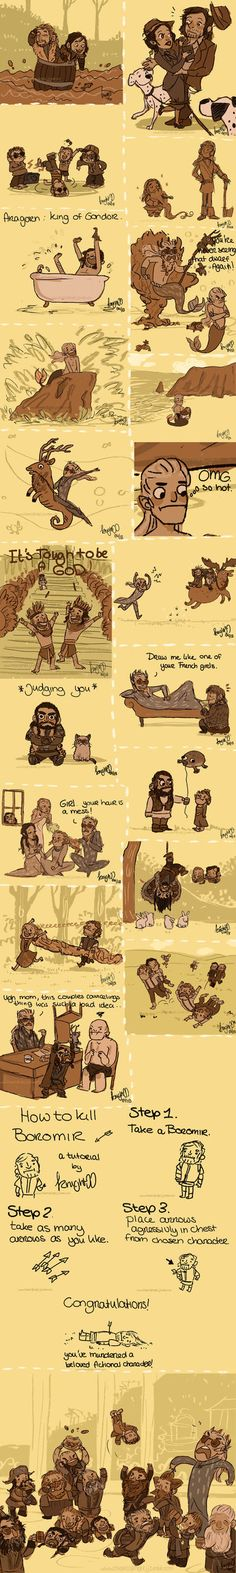 Legolas: WTF dad...! Gimli don't like this (?) this is my first strip of the Hobbit, I love the elves! and, sorry if you read a grammatical error, but, I don't speak english, I try ;A; Thrandu...